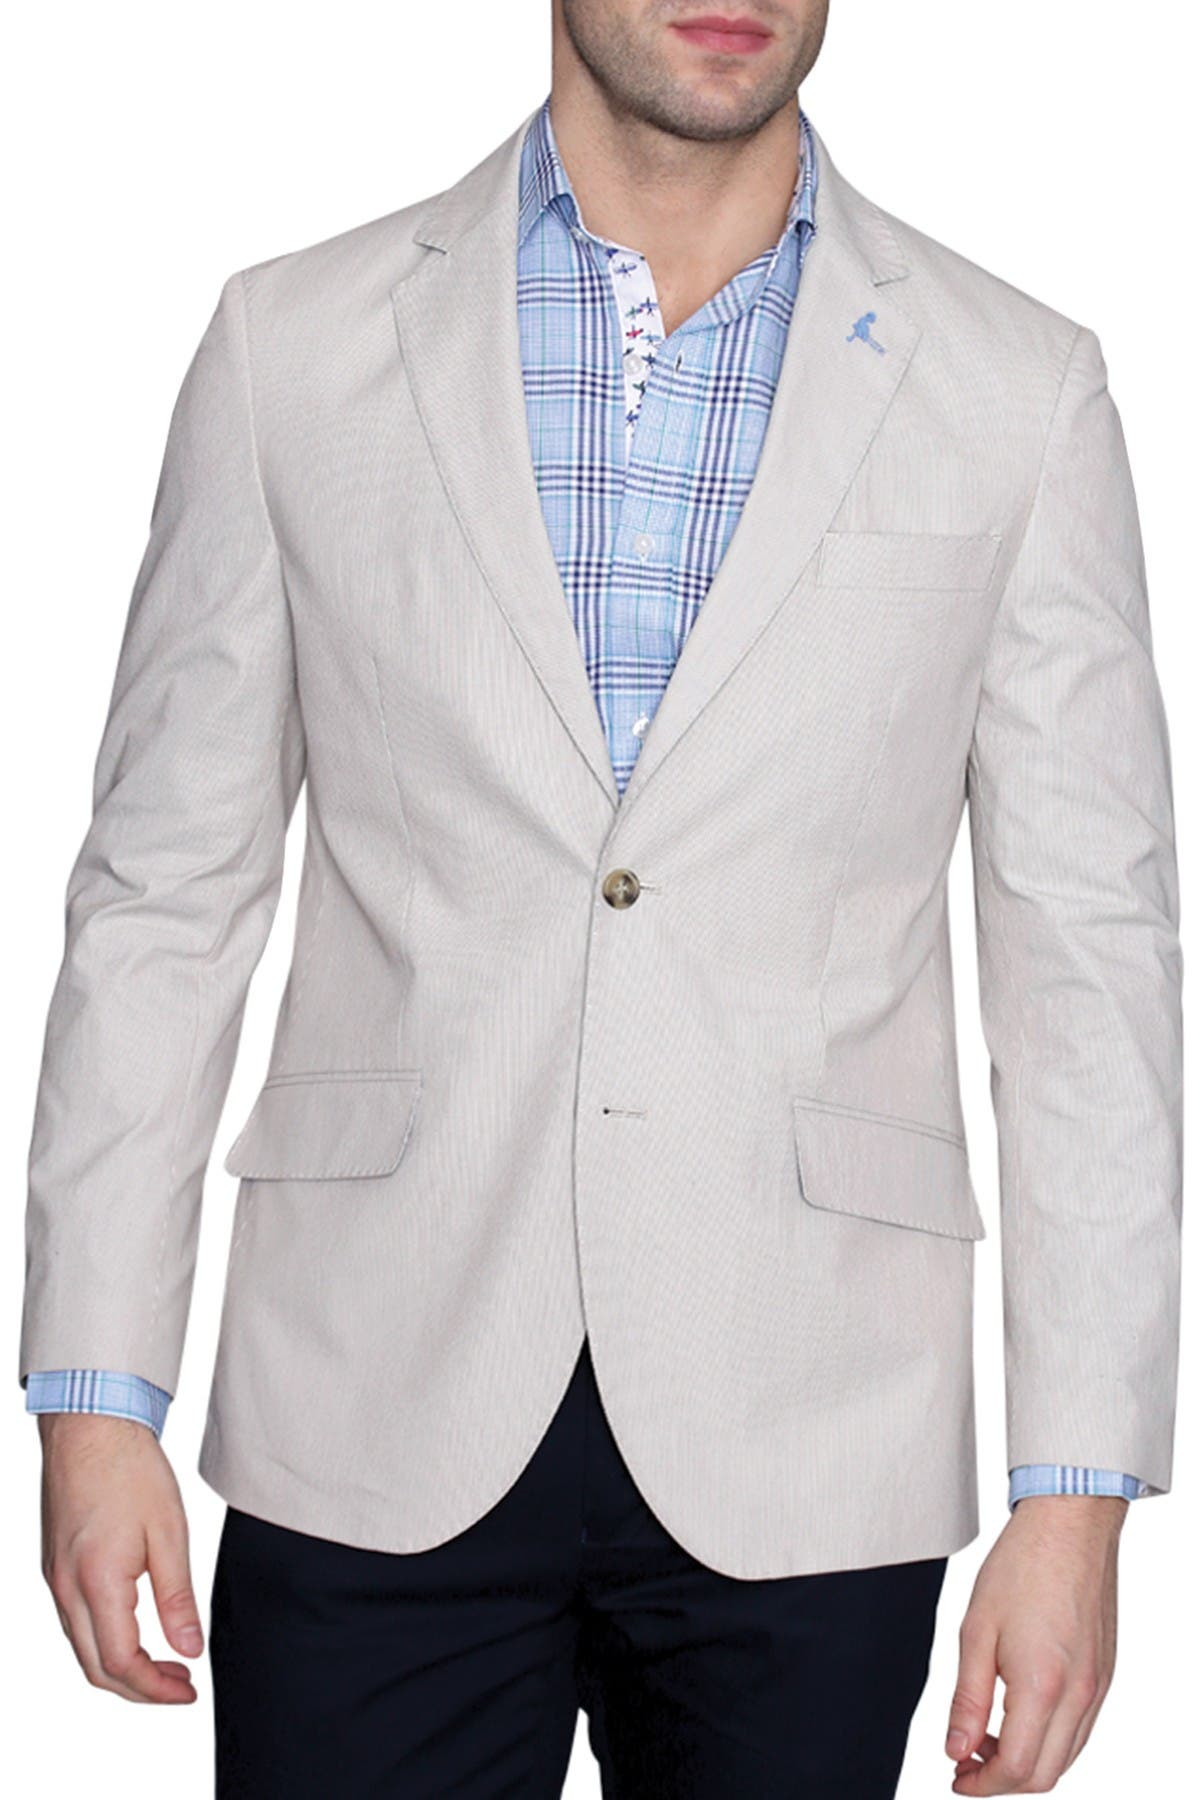 Image of TailorByrd Pincord Woven Two Button Notch Lapel Modern Fit Sport Coat